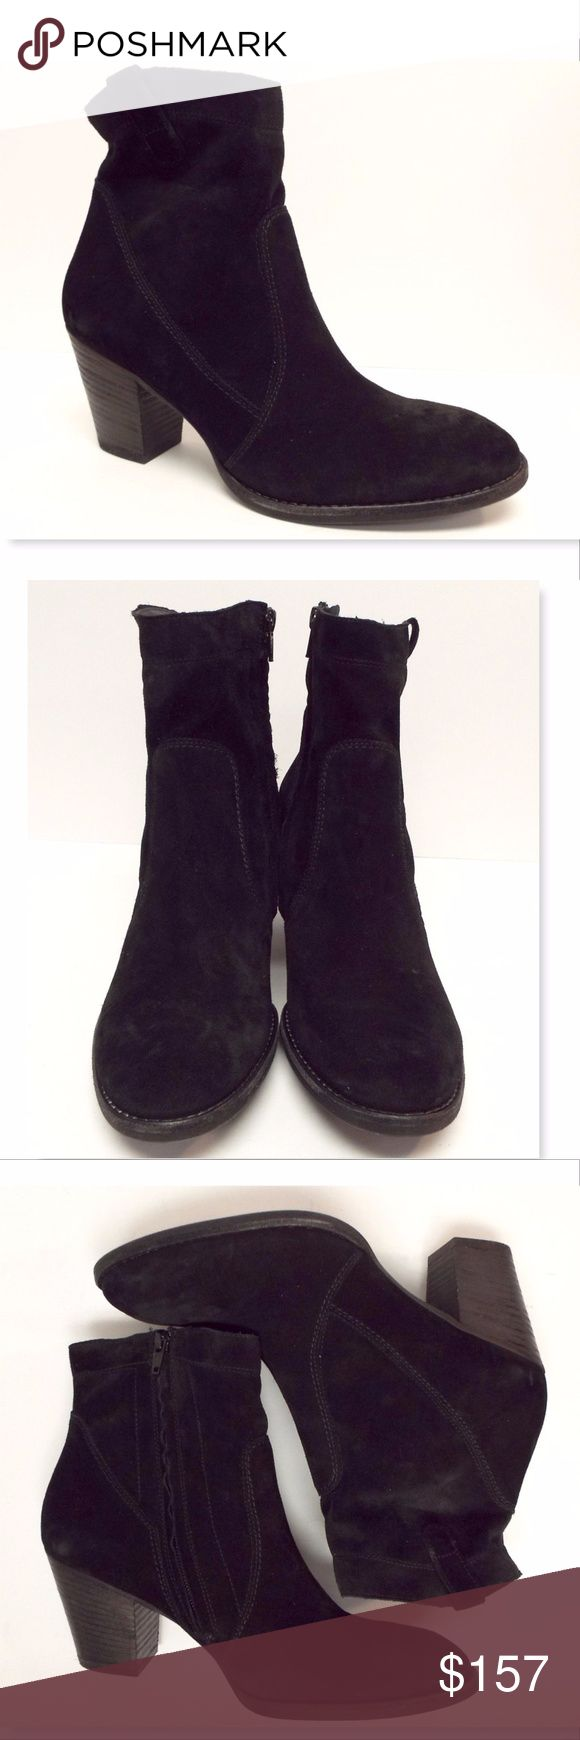 New PAUL GREEN Black Ankle Boots 7.5UK/10US PAUL GREEN 100% Authentic!! Black Waxed Suede Leather Flex Ankle Boots Size  7 1/2 Eur or 10 Medium New without box All actual photos of the item. Paul Green Shoes Ankle Boots & Booties